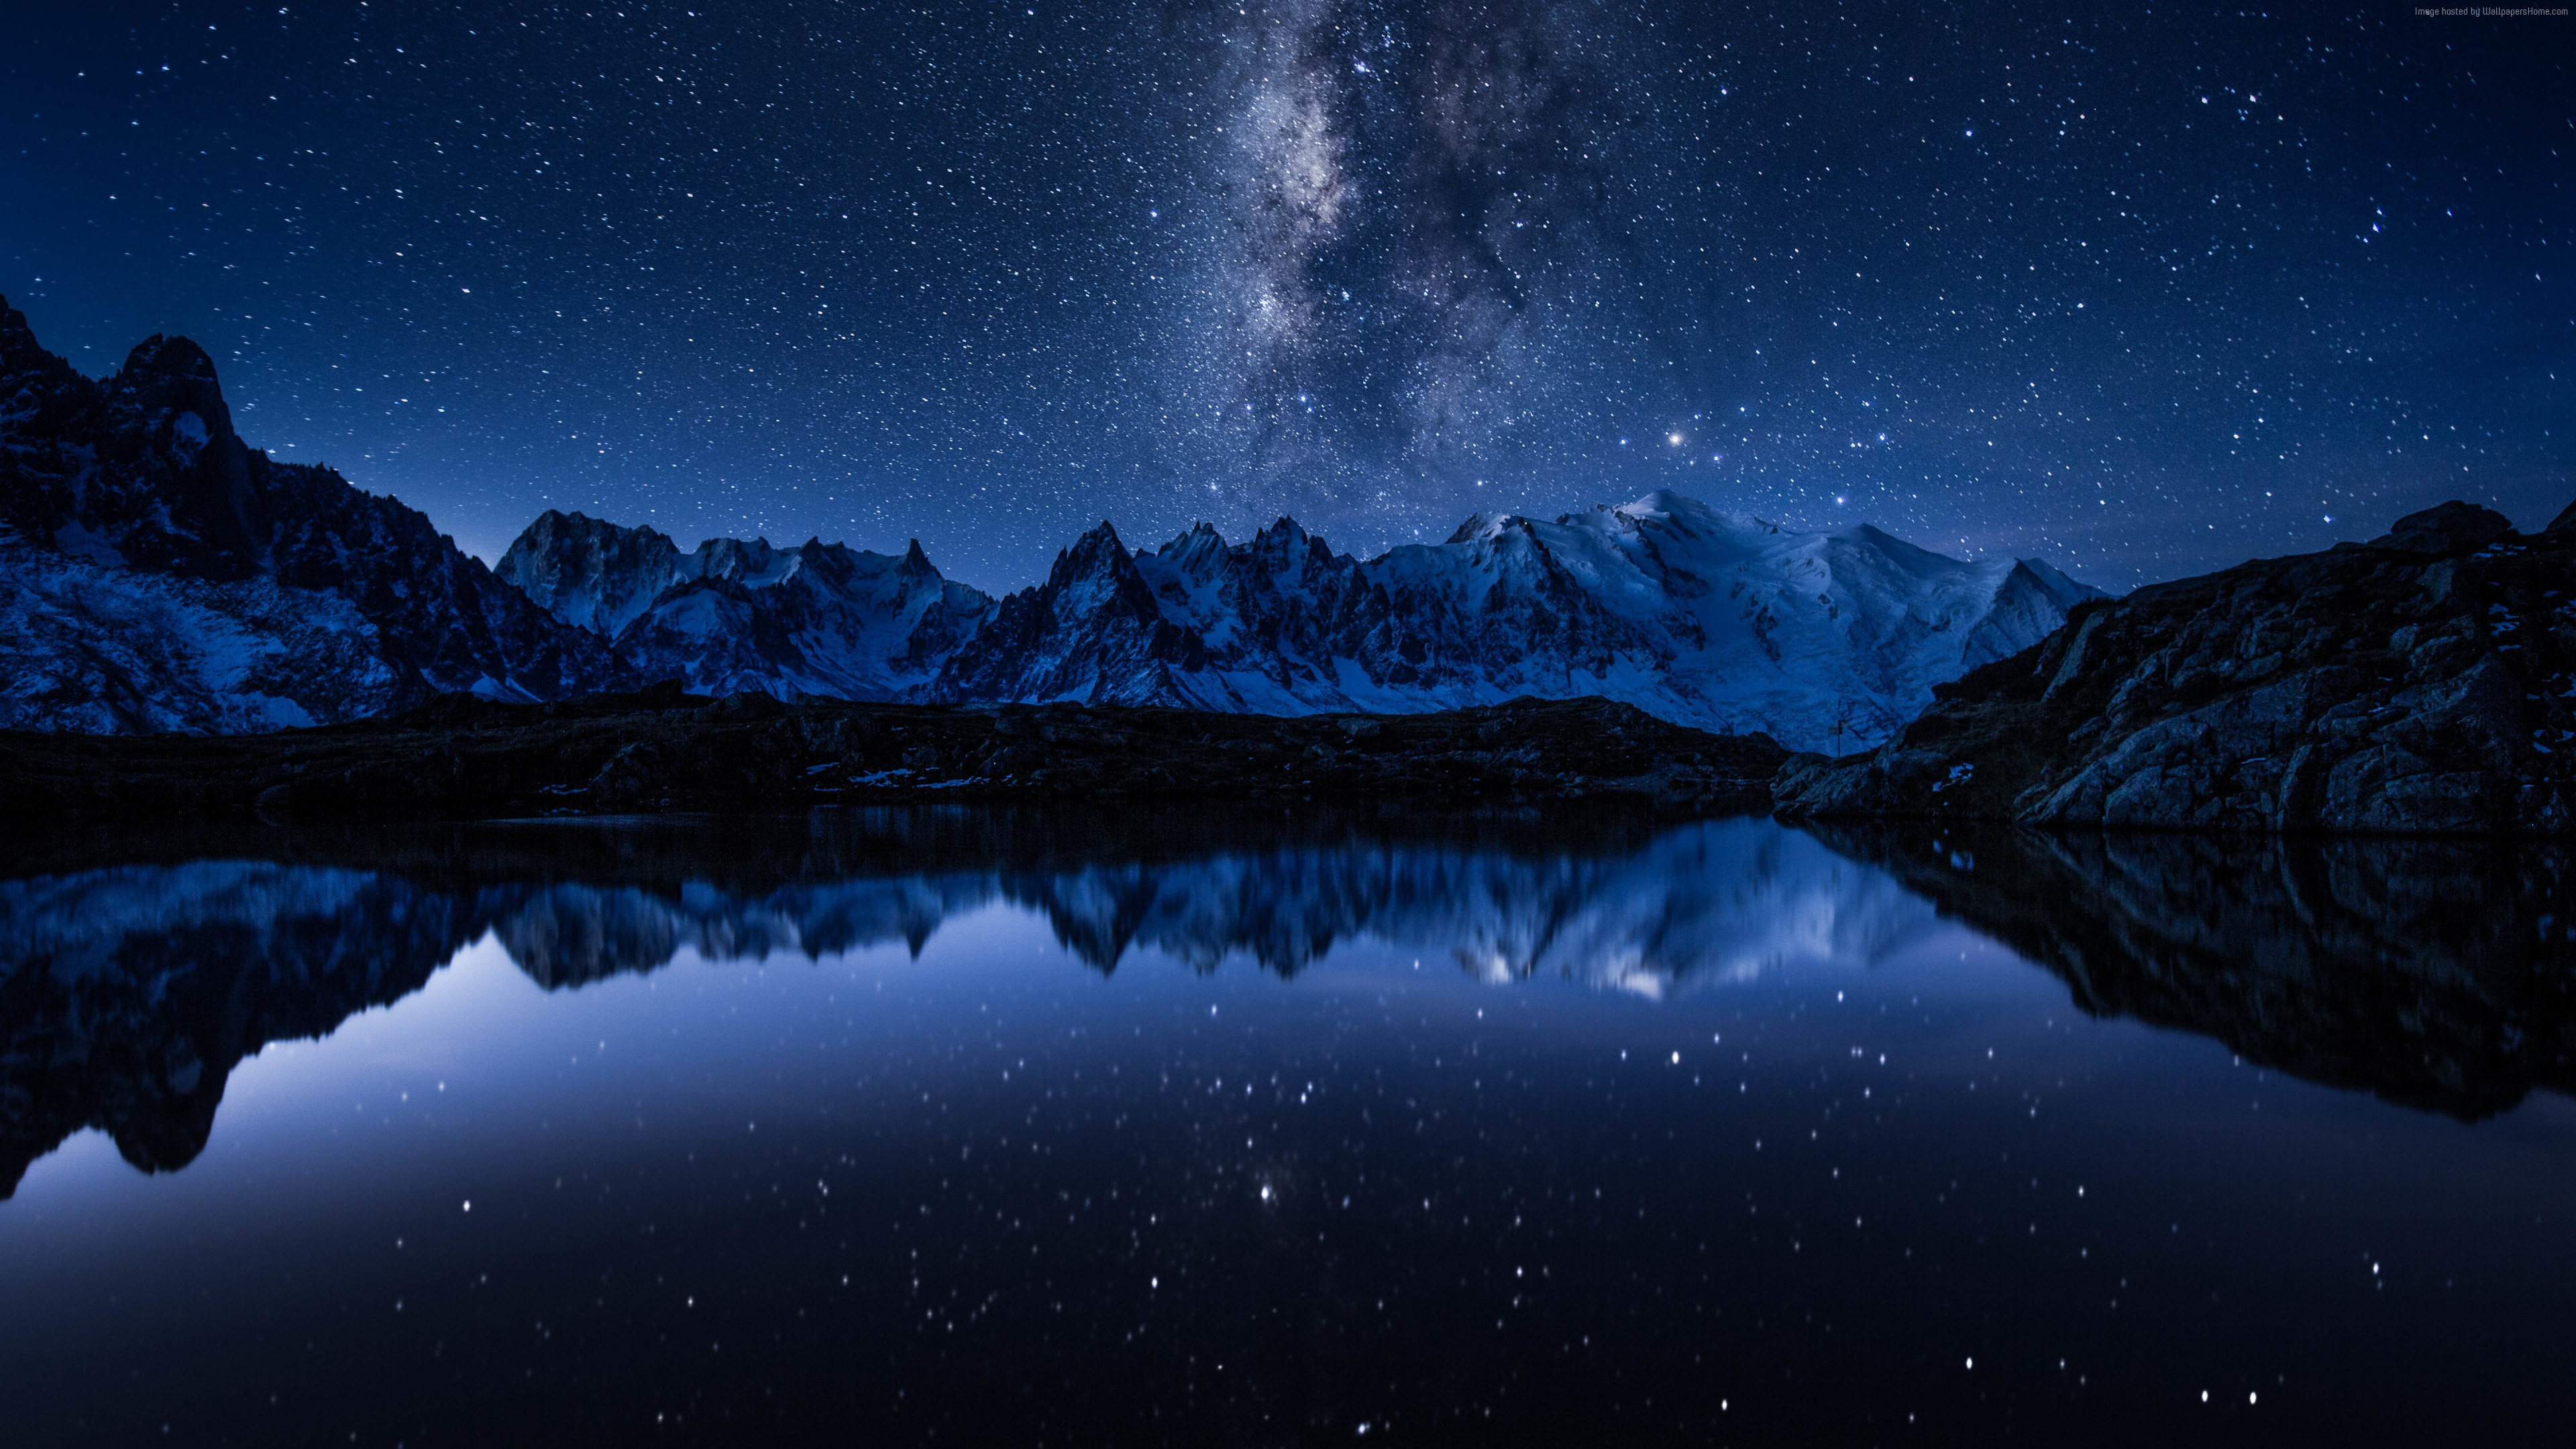 Wallpaper stars, mountains, lake, 5k, Space